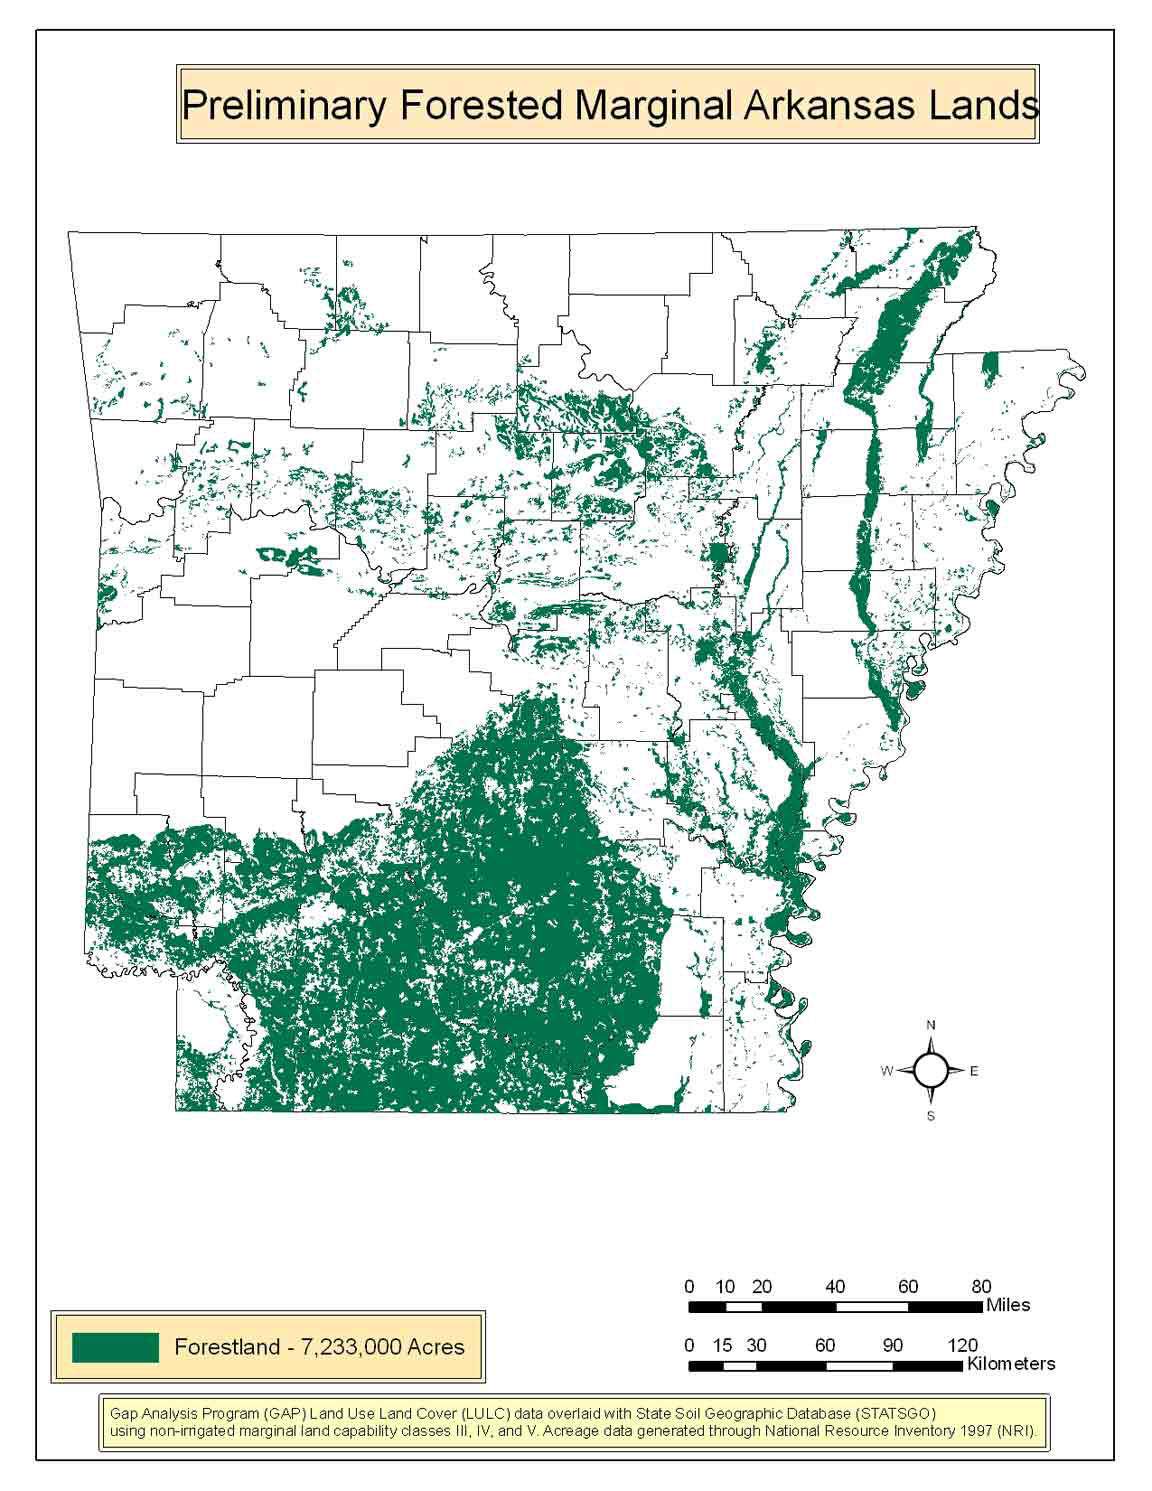 Preliminary Forested Marginal Arkansas Lands